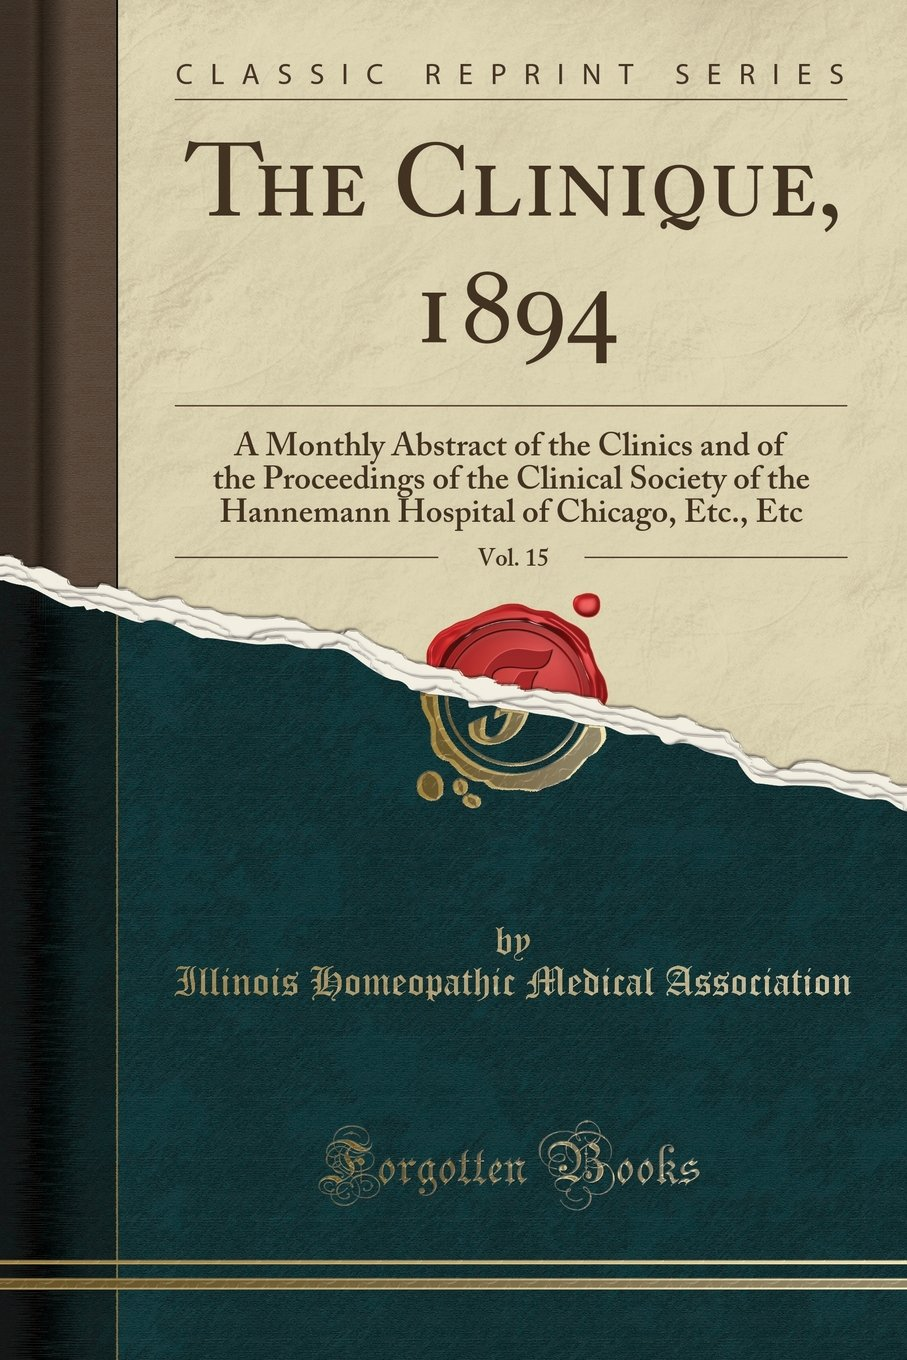 Download The Clinique, 1894, Vol. 15: A Monthly Abstract of the Clinics and of the Proceedings of the Clinical Society of the Hannemann Hospital of Chicago, Etc., Etc (Classic Reprint) PDF